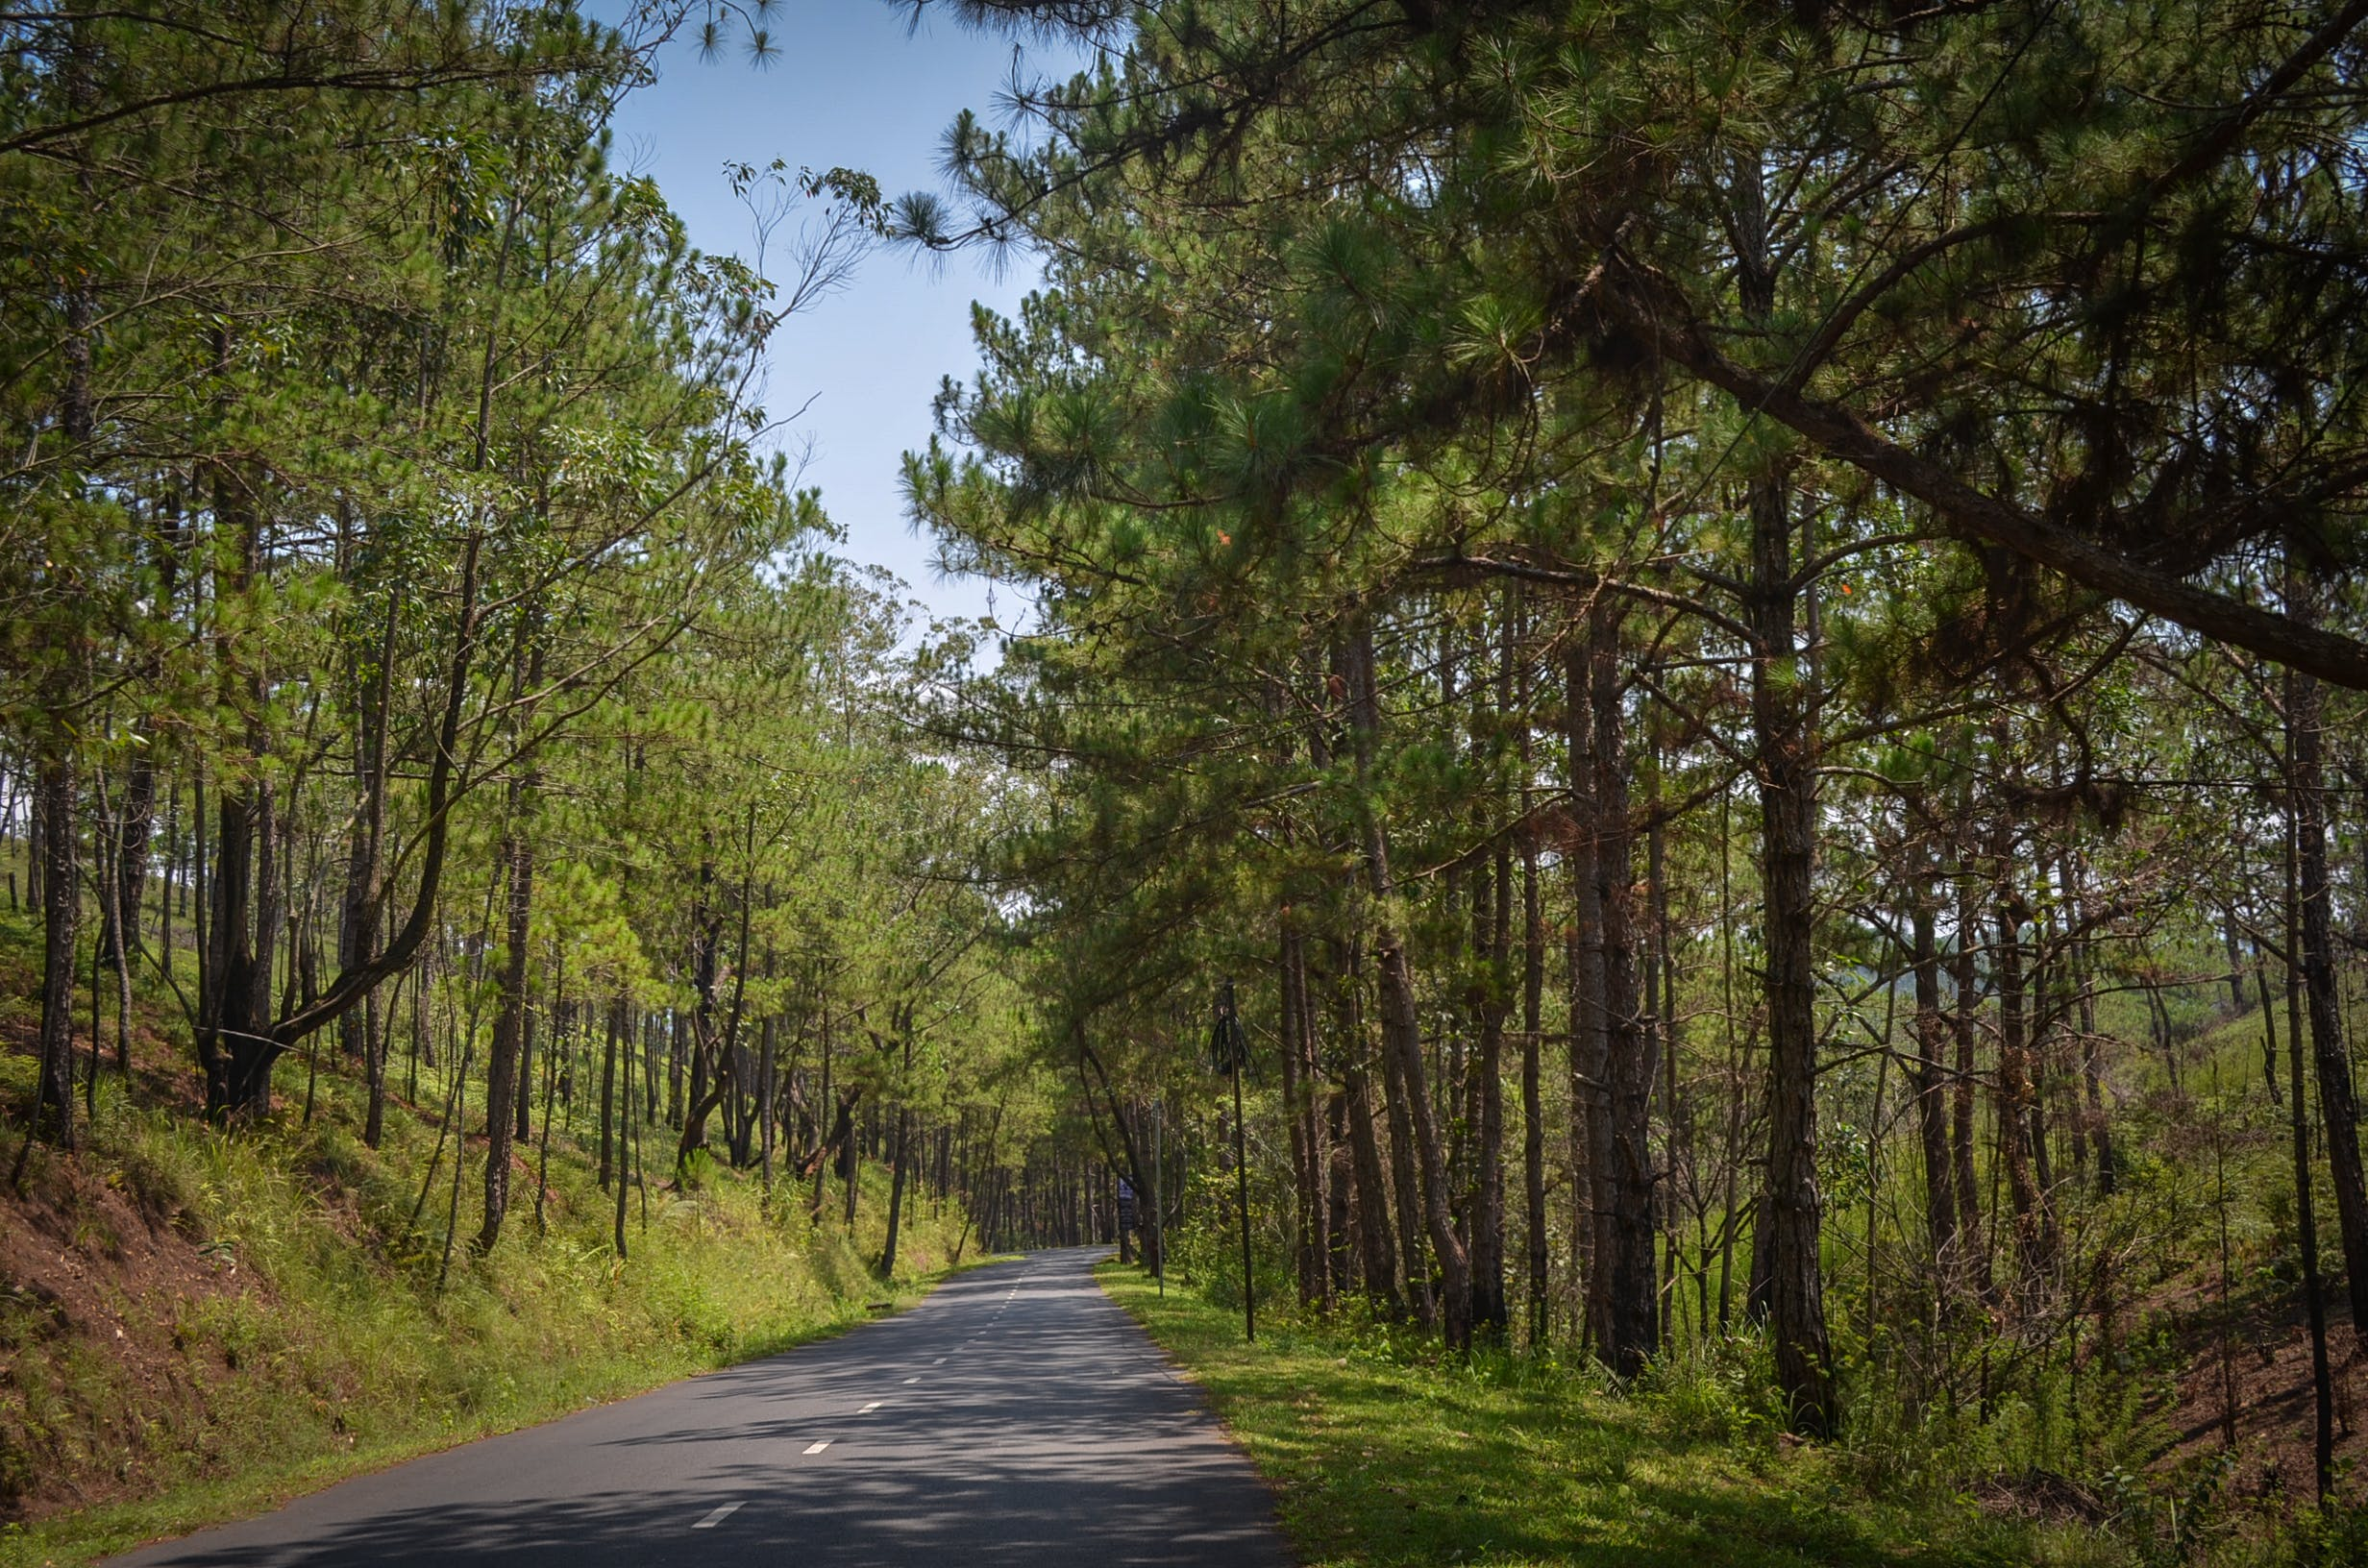 countryside road, pine trees